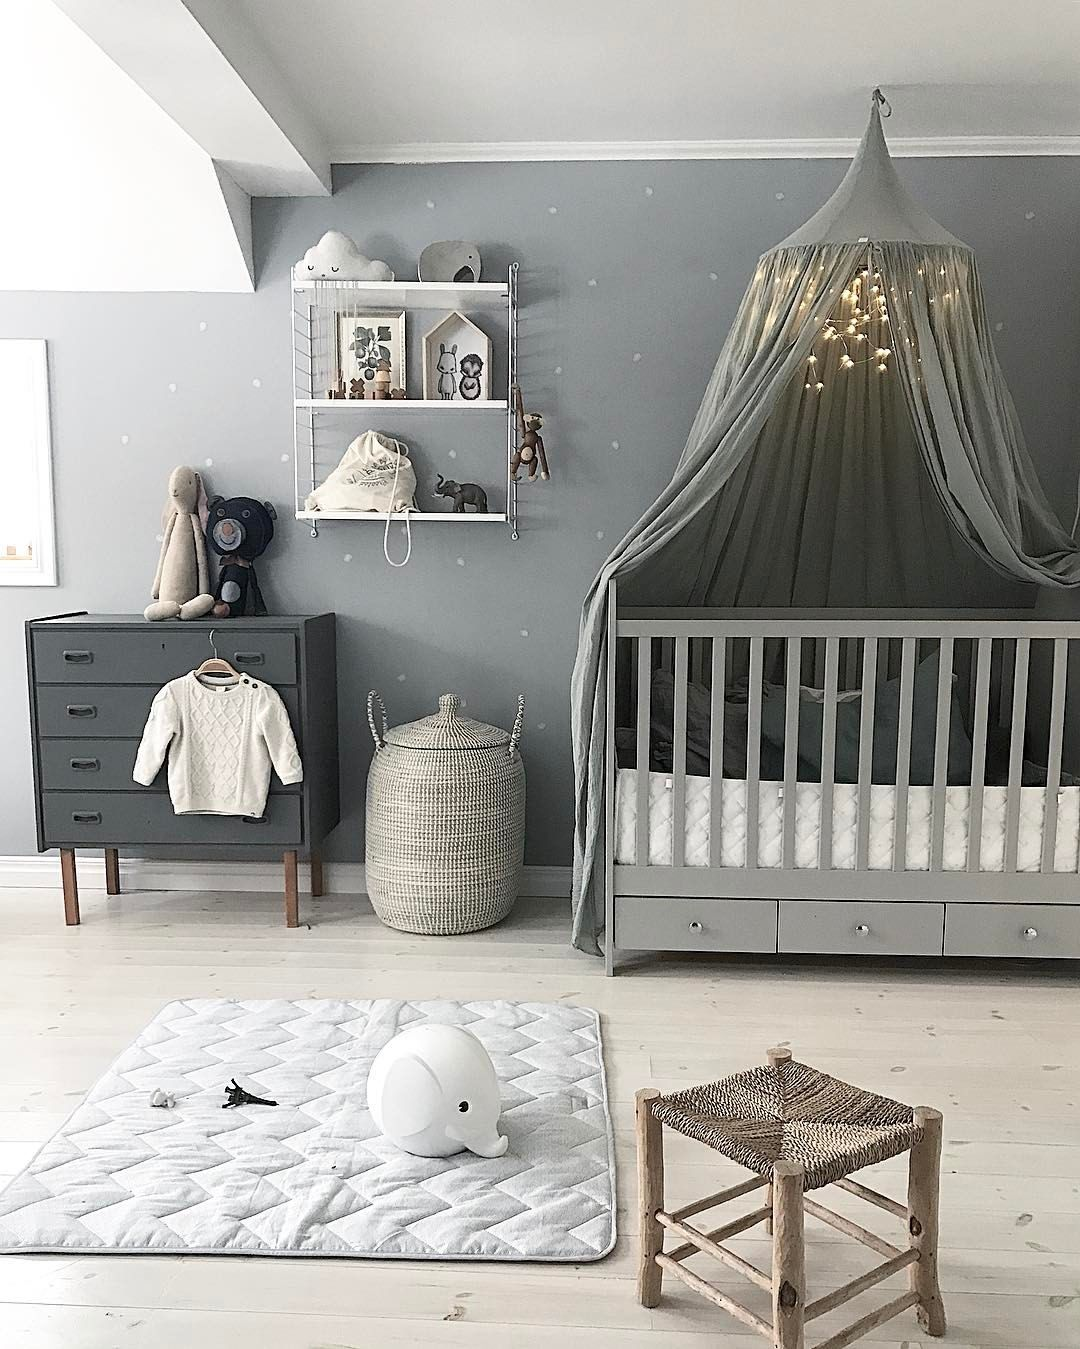 The Hallam Family Baby Room Ideas: 18 Luxurious Pink Gray Nursery Room